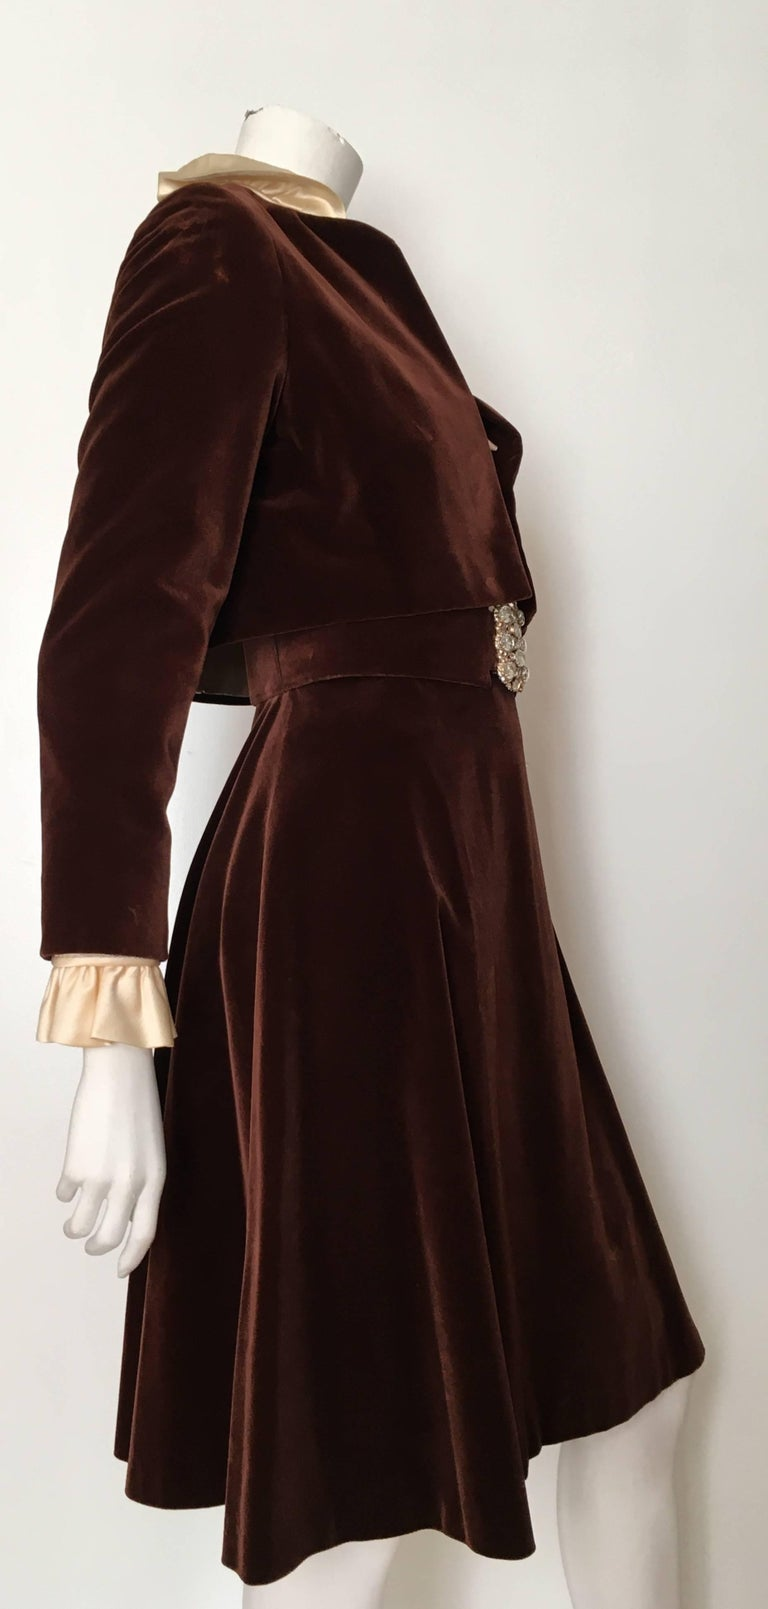 Teal Traina 1960s Brown Velvet Dress With Cropped Jacket